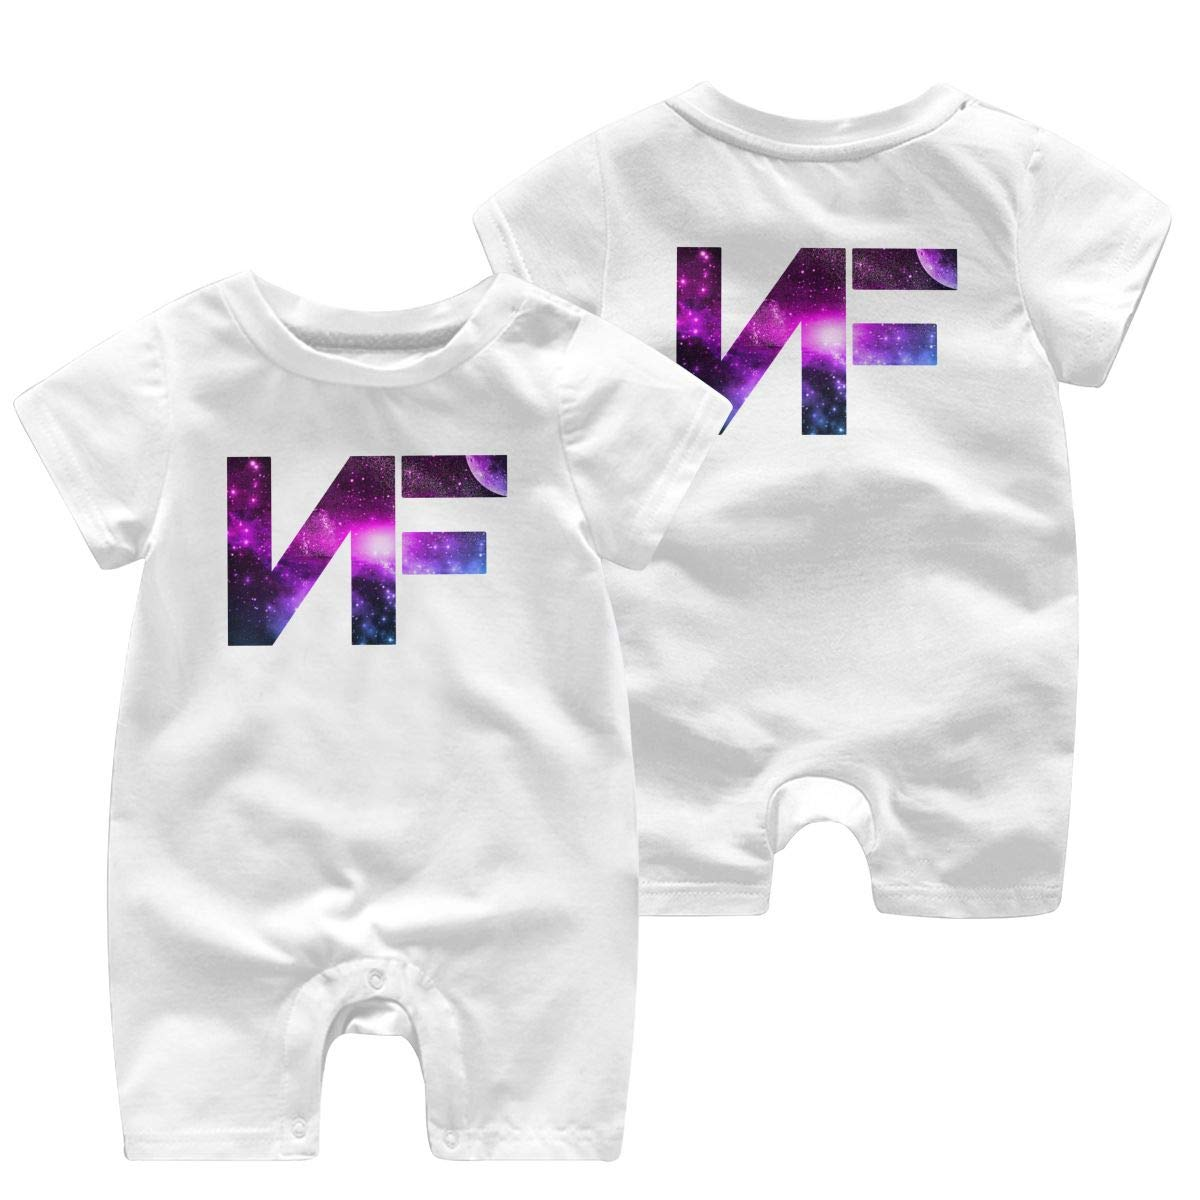 Double Print HGJLTY NF Baby Jumpsuit Boys Girls 100/% Cotton Short Sleeve Rompers